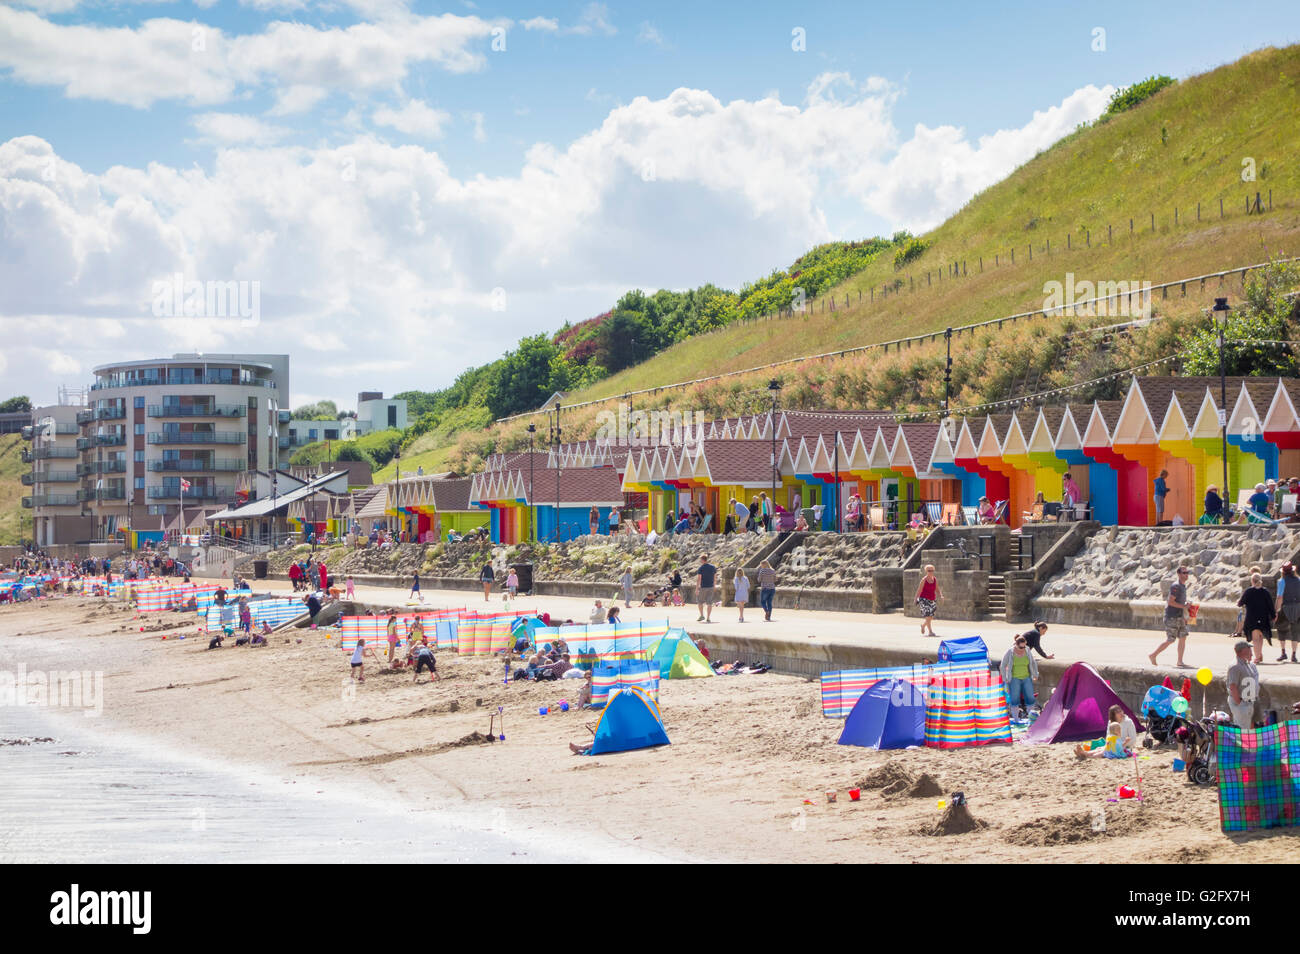 Beach huts overlooking North Bay beach, Scarborough, North Yorkshire, England, United Kingdom - Stock Image